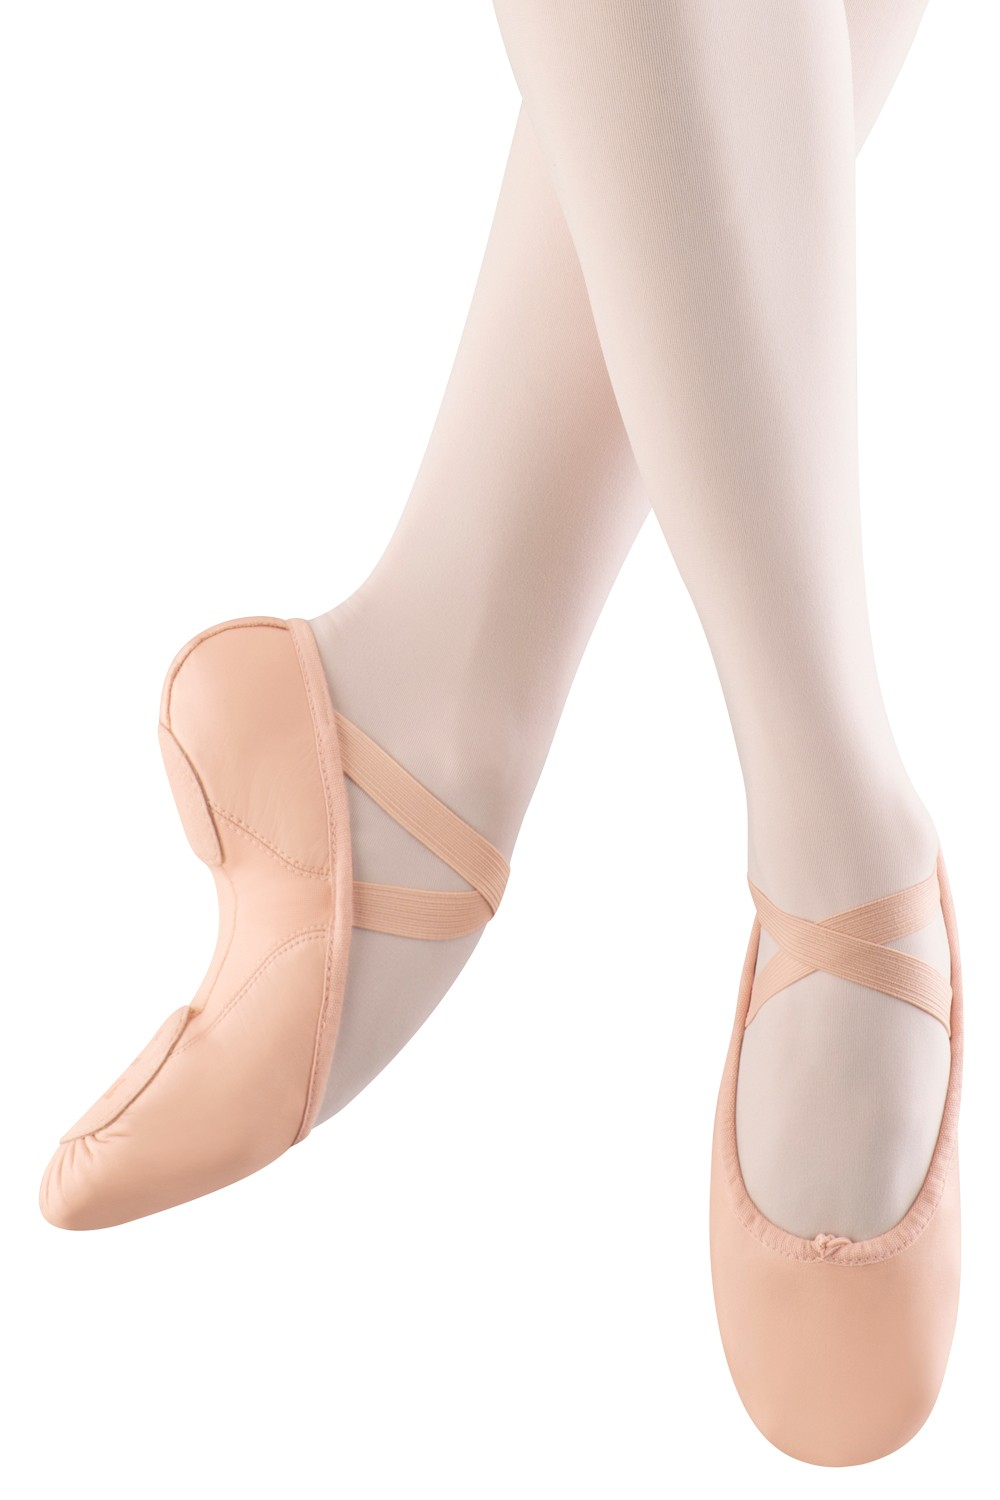 Proflex Leather Women's Ballet Shoes